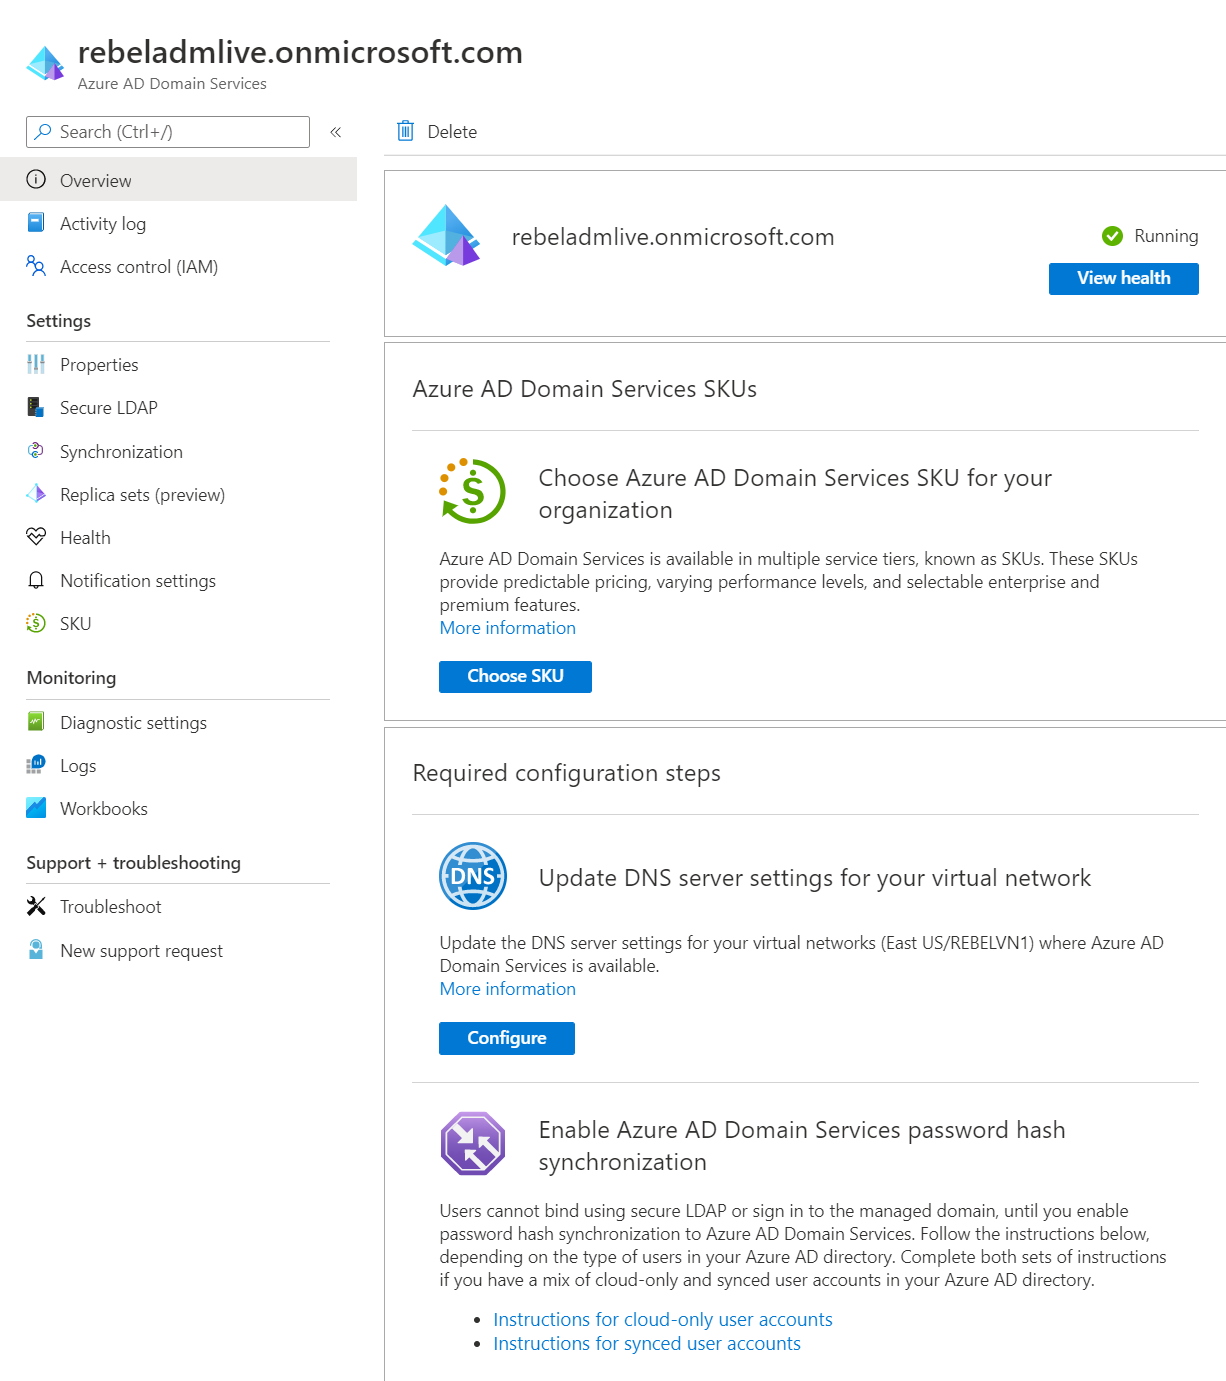 Azure Active Directory Domain Services managed domain properties